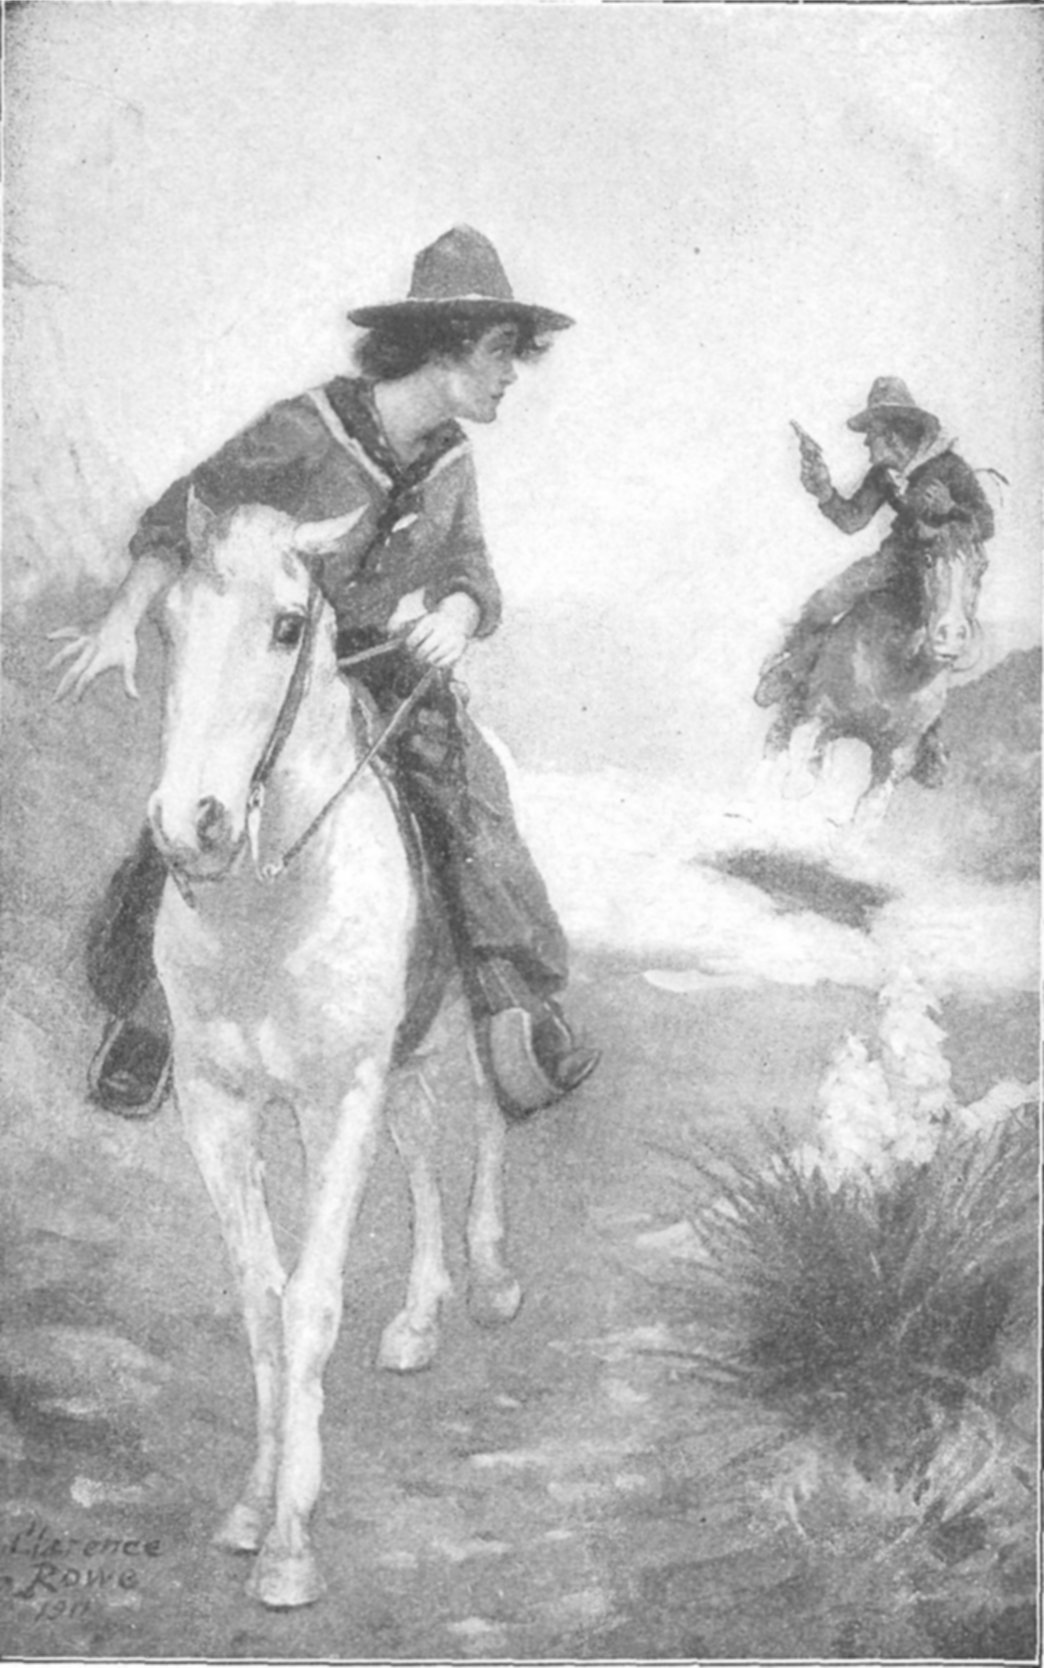 c46fb15a5e3 THE RIDER SLEWED IN THE SADDLE WITH HIS WHOLE ATTENTION UPON POSSIBLE  PURSUIT. Frontispiece.